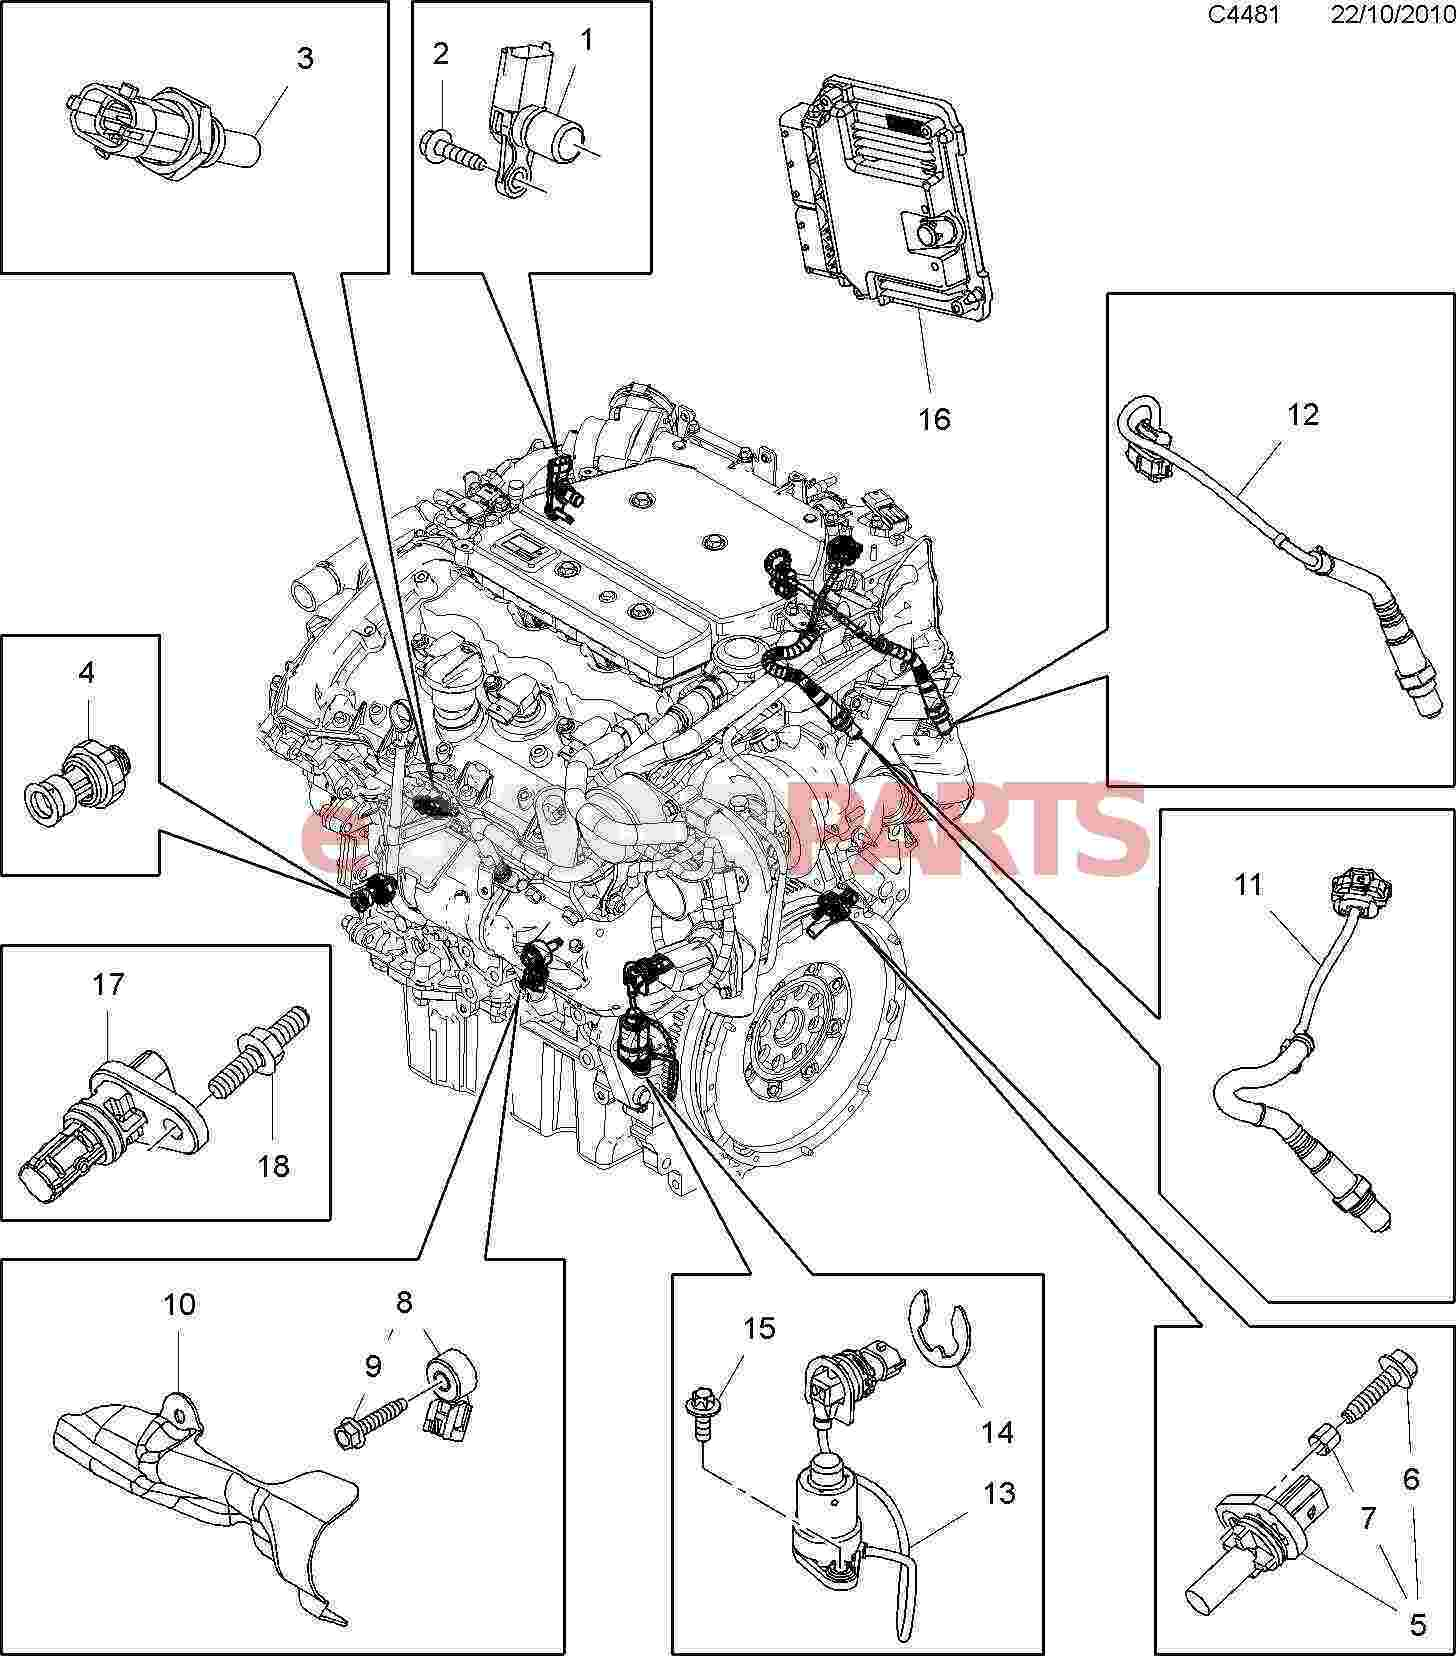 Toyota Solara Fuel Filter Location